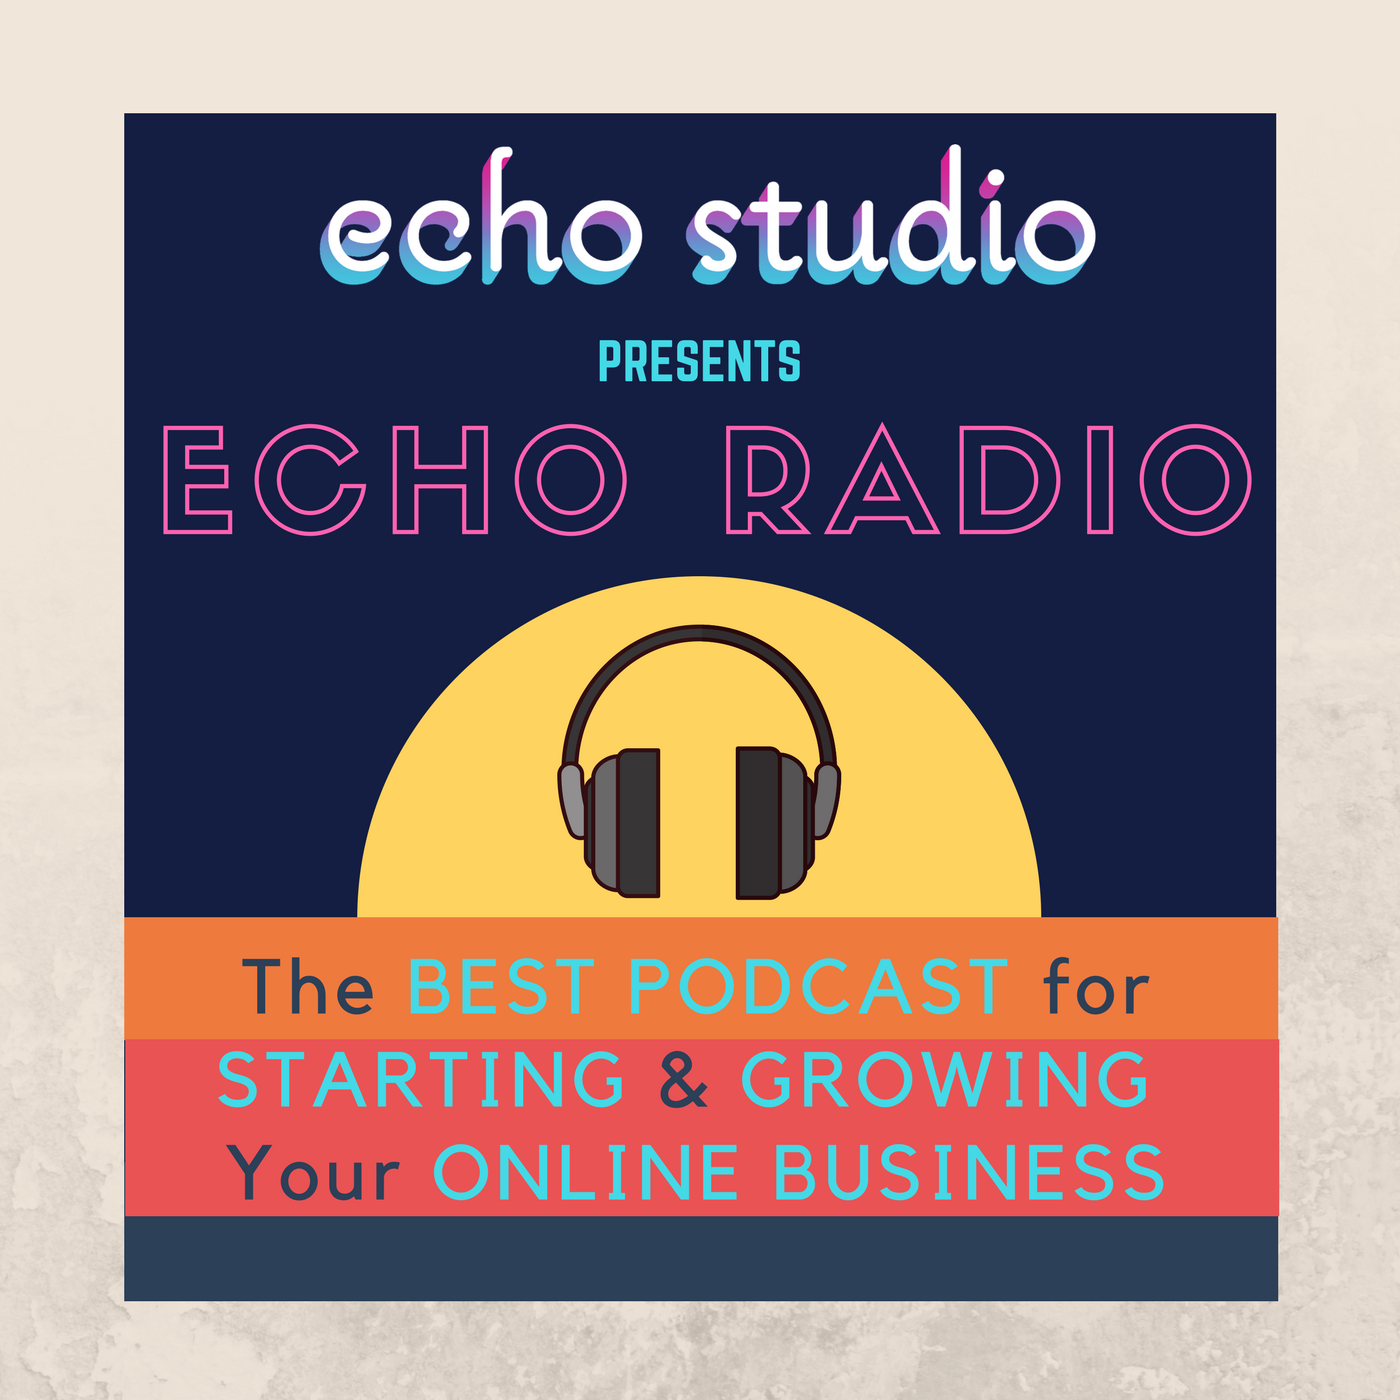 adrien-harrison-echo-studio-echo-radio-the-best-podcast-for-starting-and-growing-your-online-business